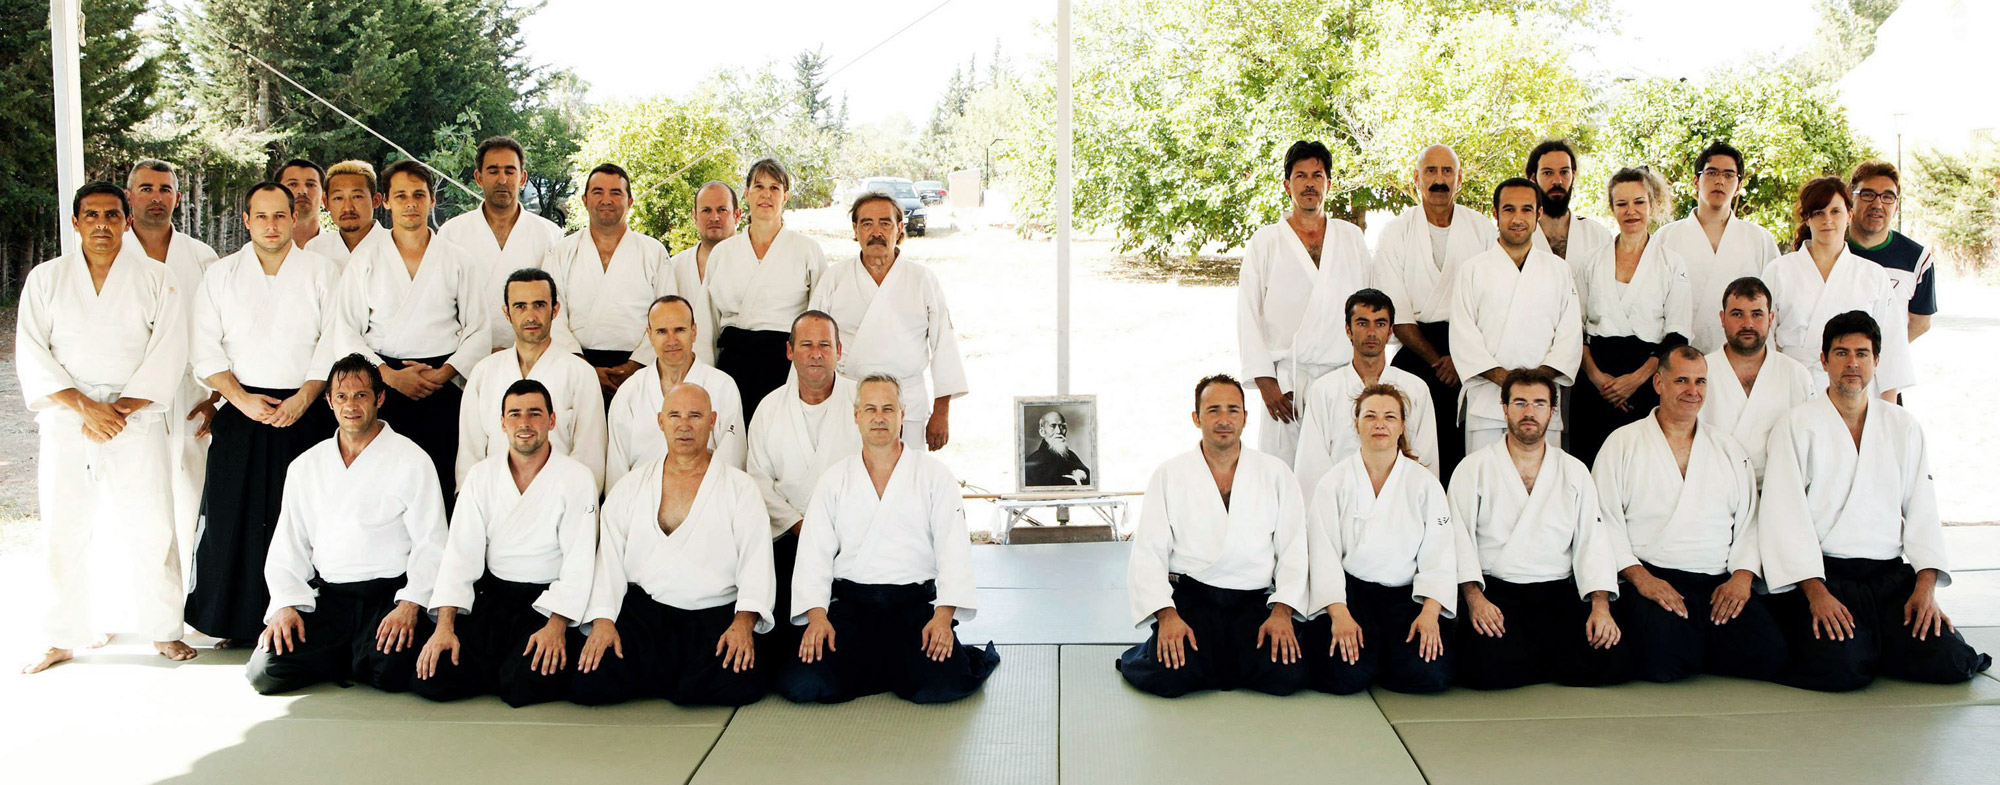 aikido-summer-camp-by-marc